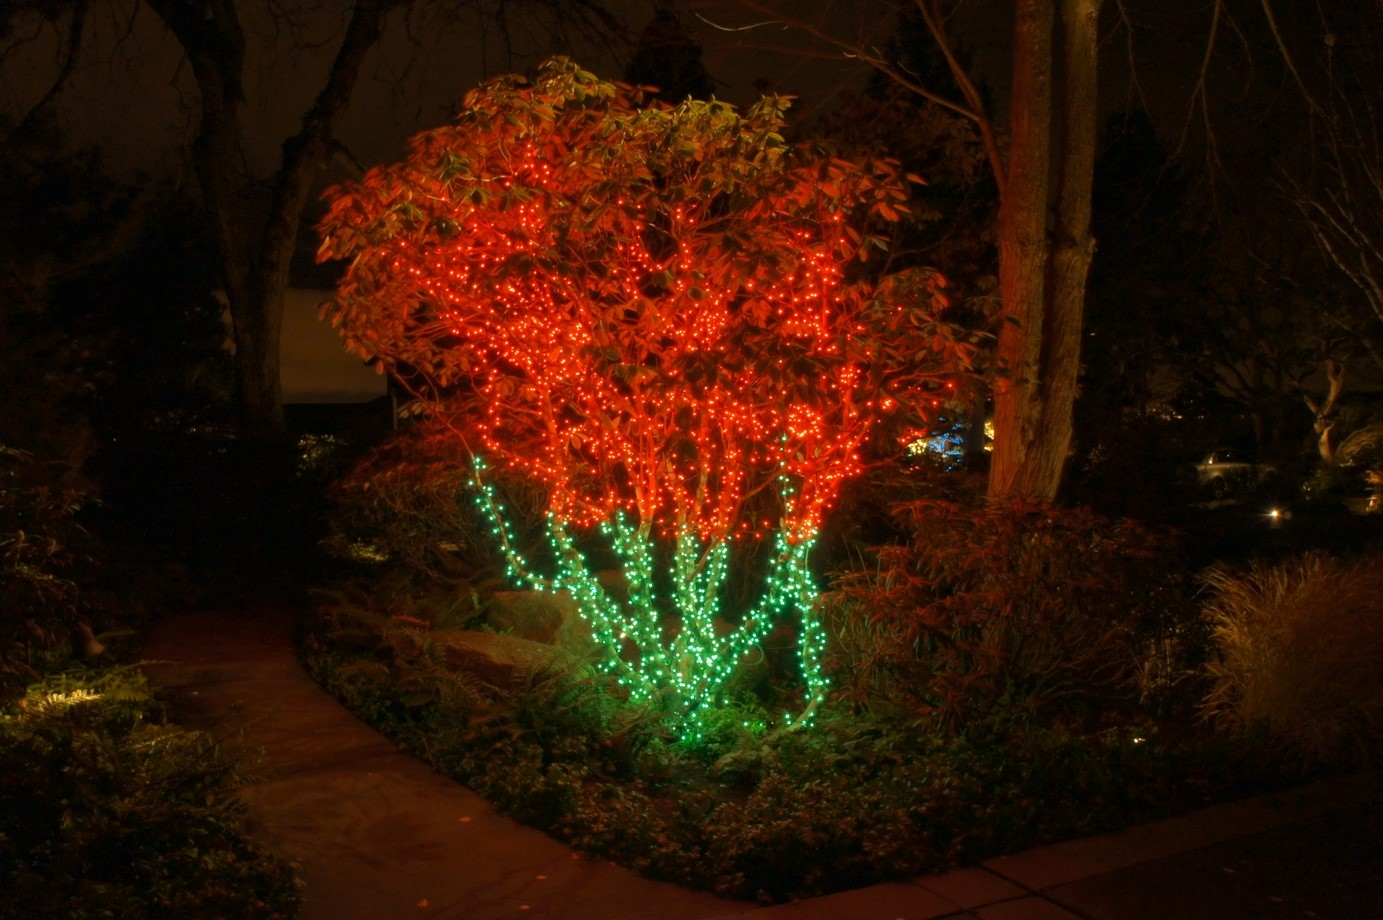 Tree with green and red light display